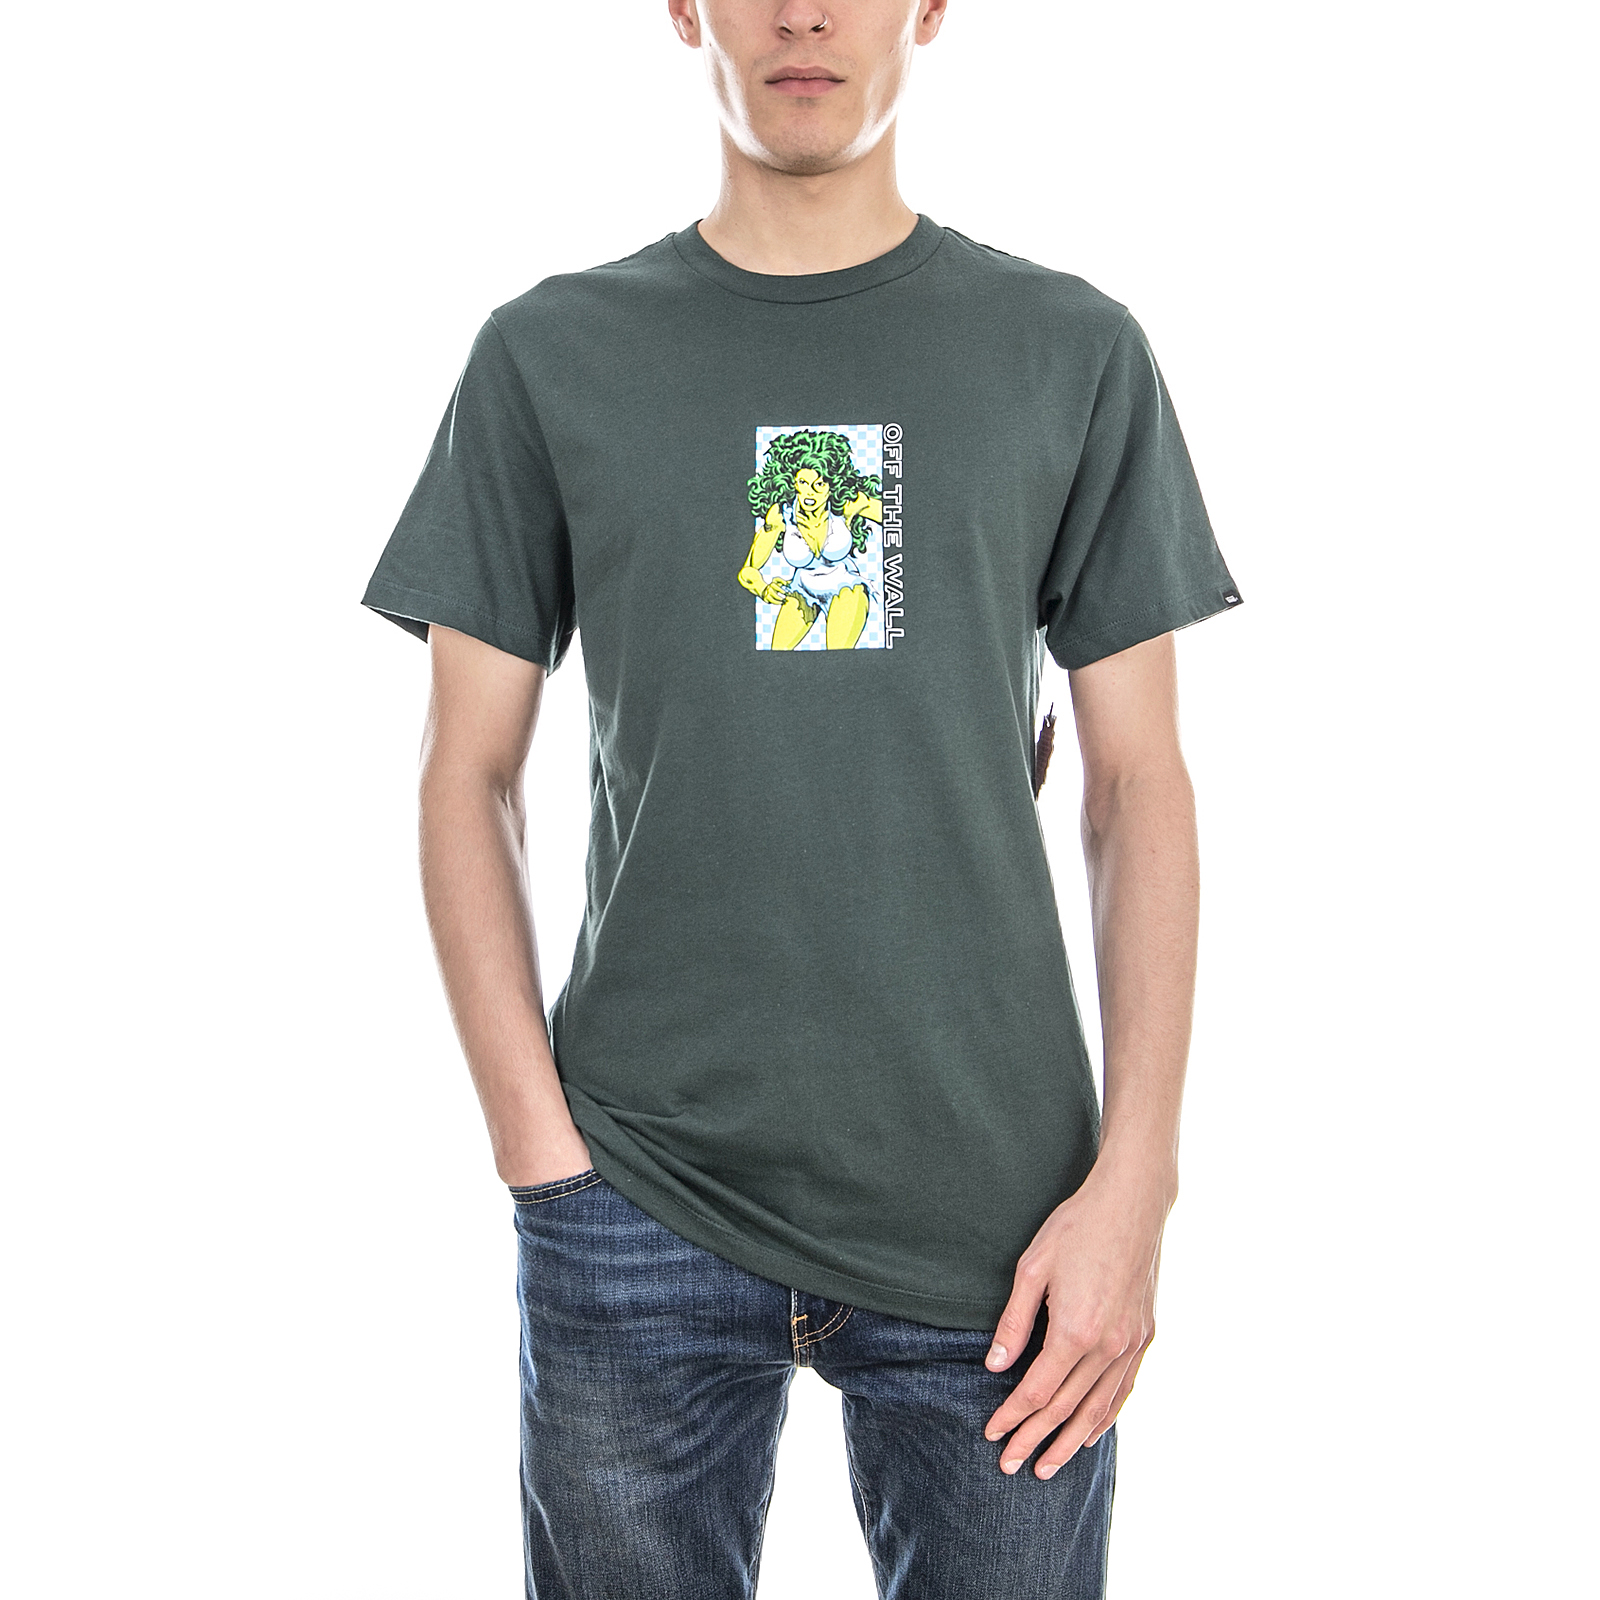 Vans T-Shirt Mn Vans X Marvel She Darkest Spru Verde